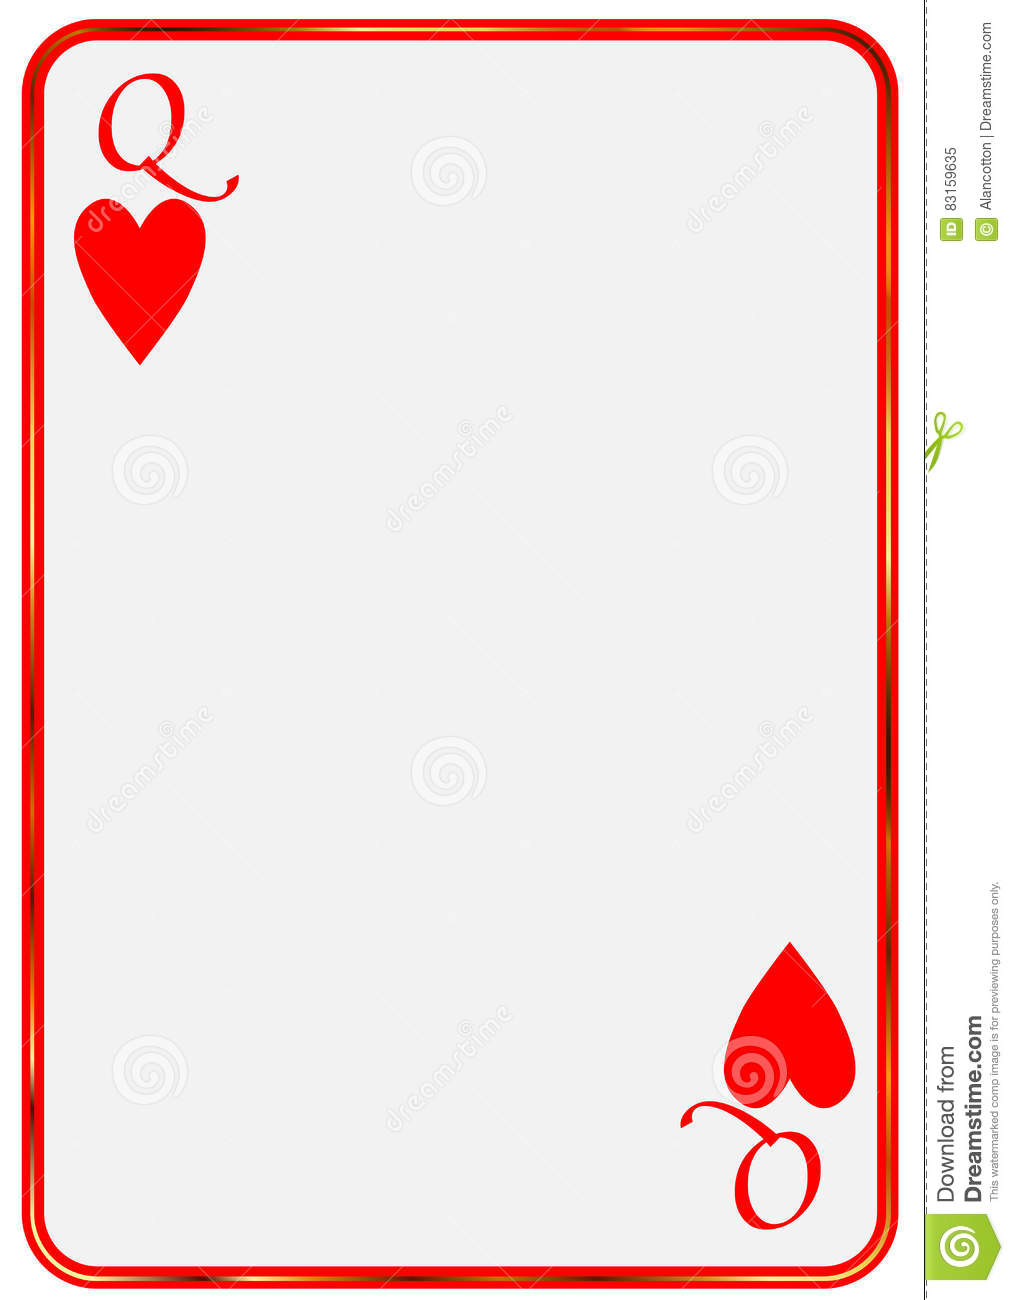 Blank Card Queen Hearts Stock Vector Illustration Of 83159635 Playing Template